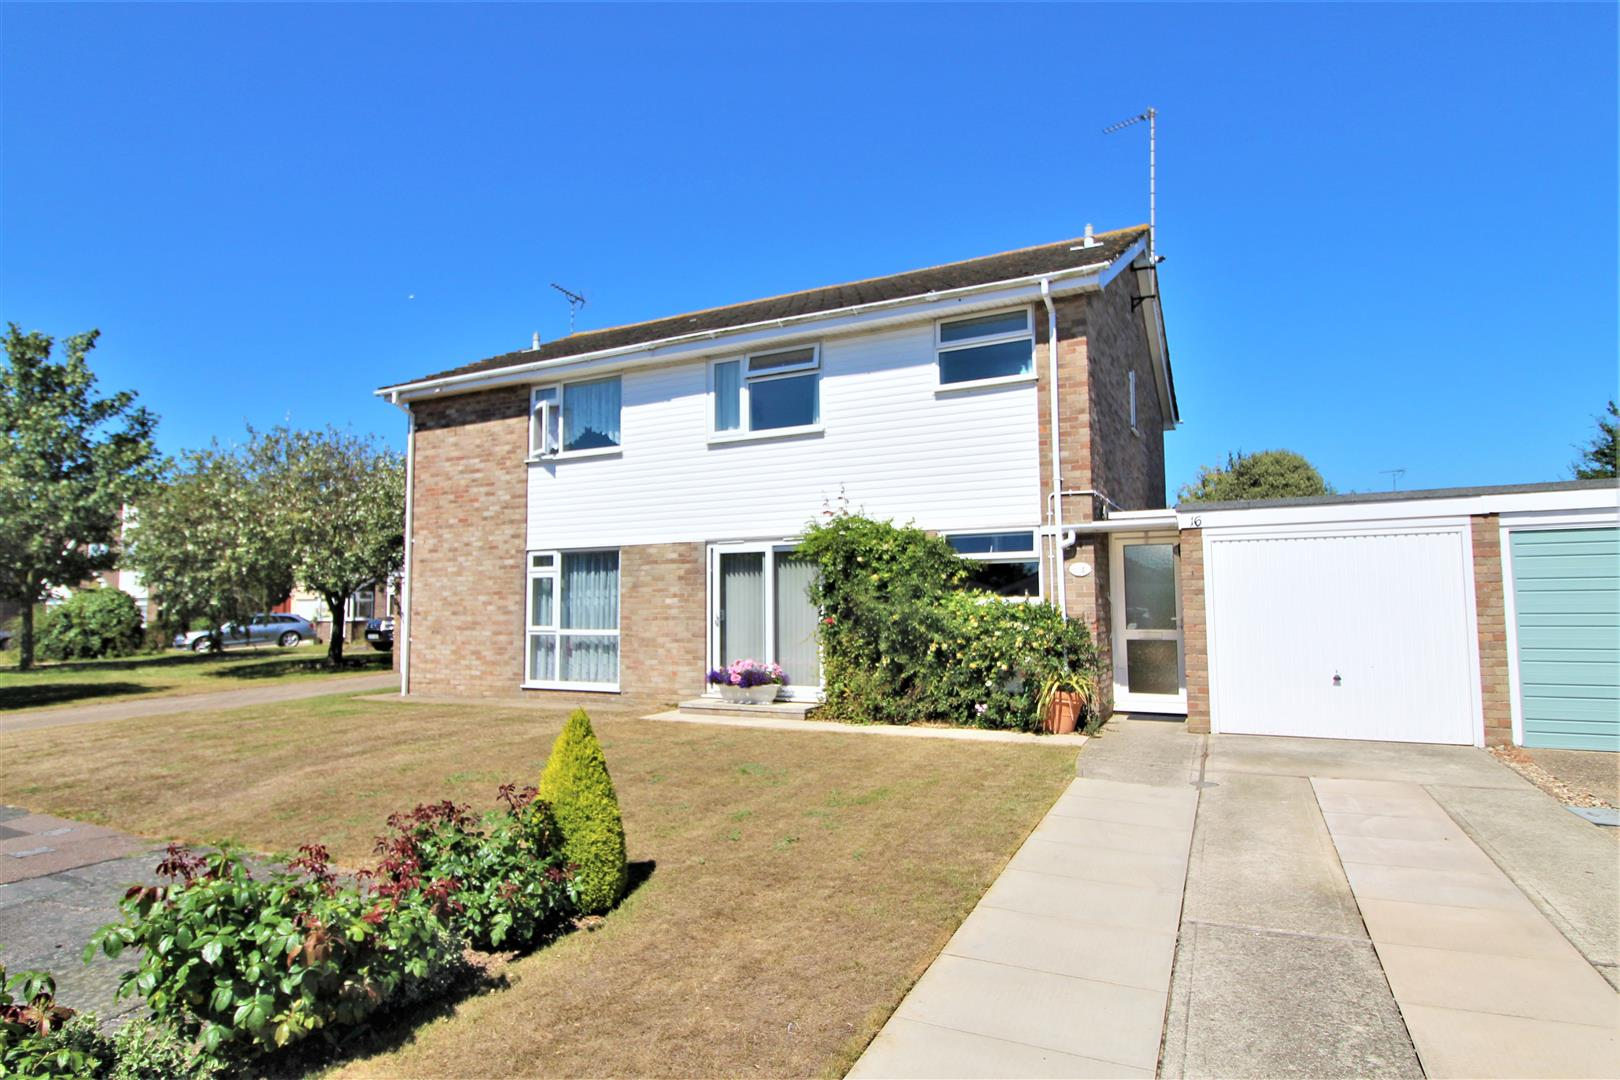 Lushington Avenue, Kirby Cross, Essex, CO13 0RF